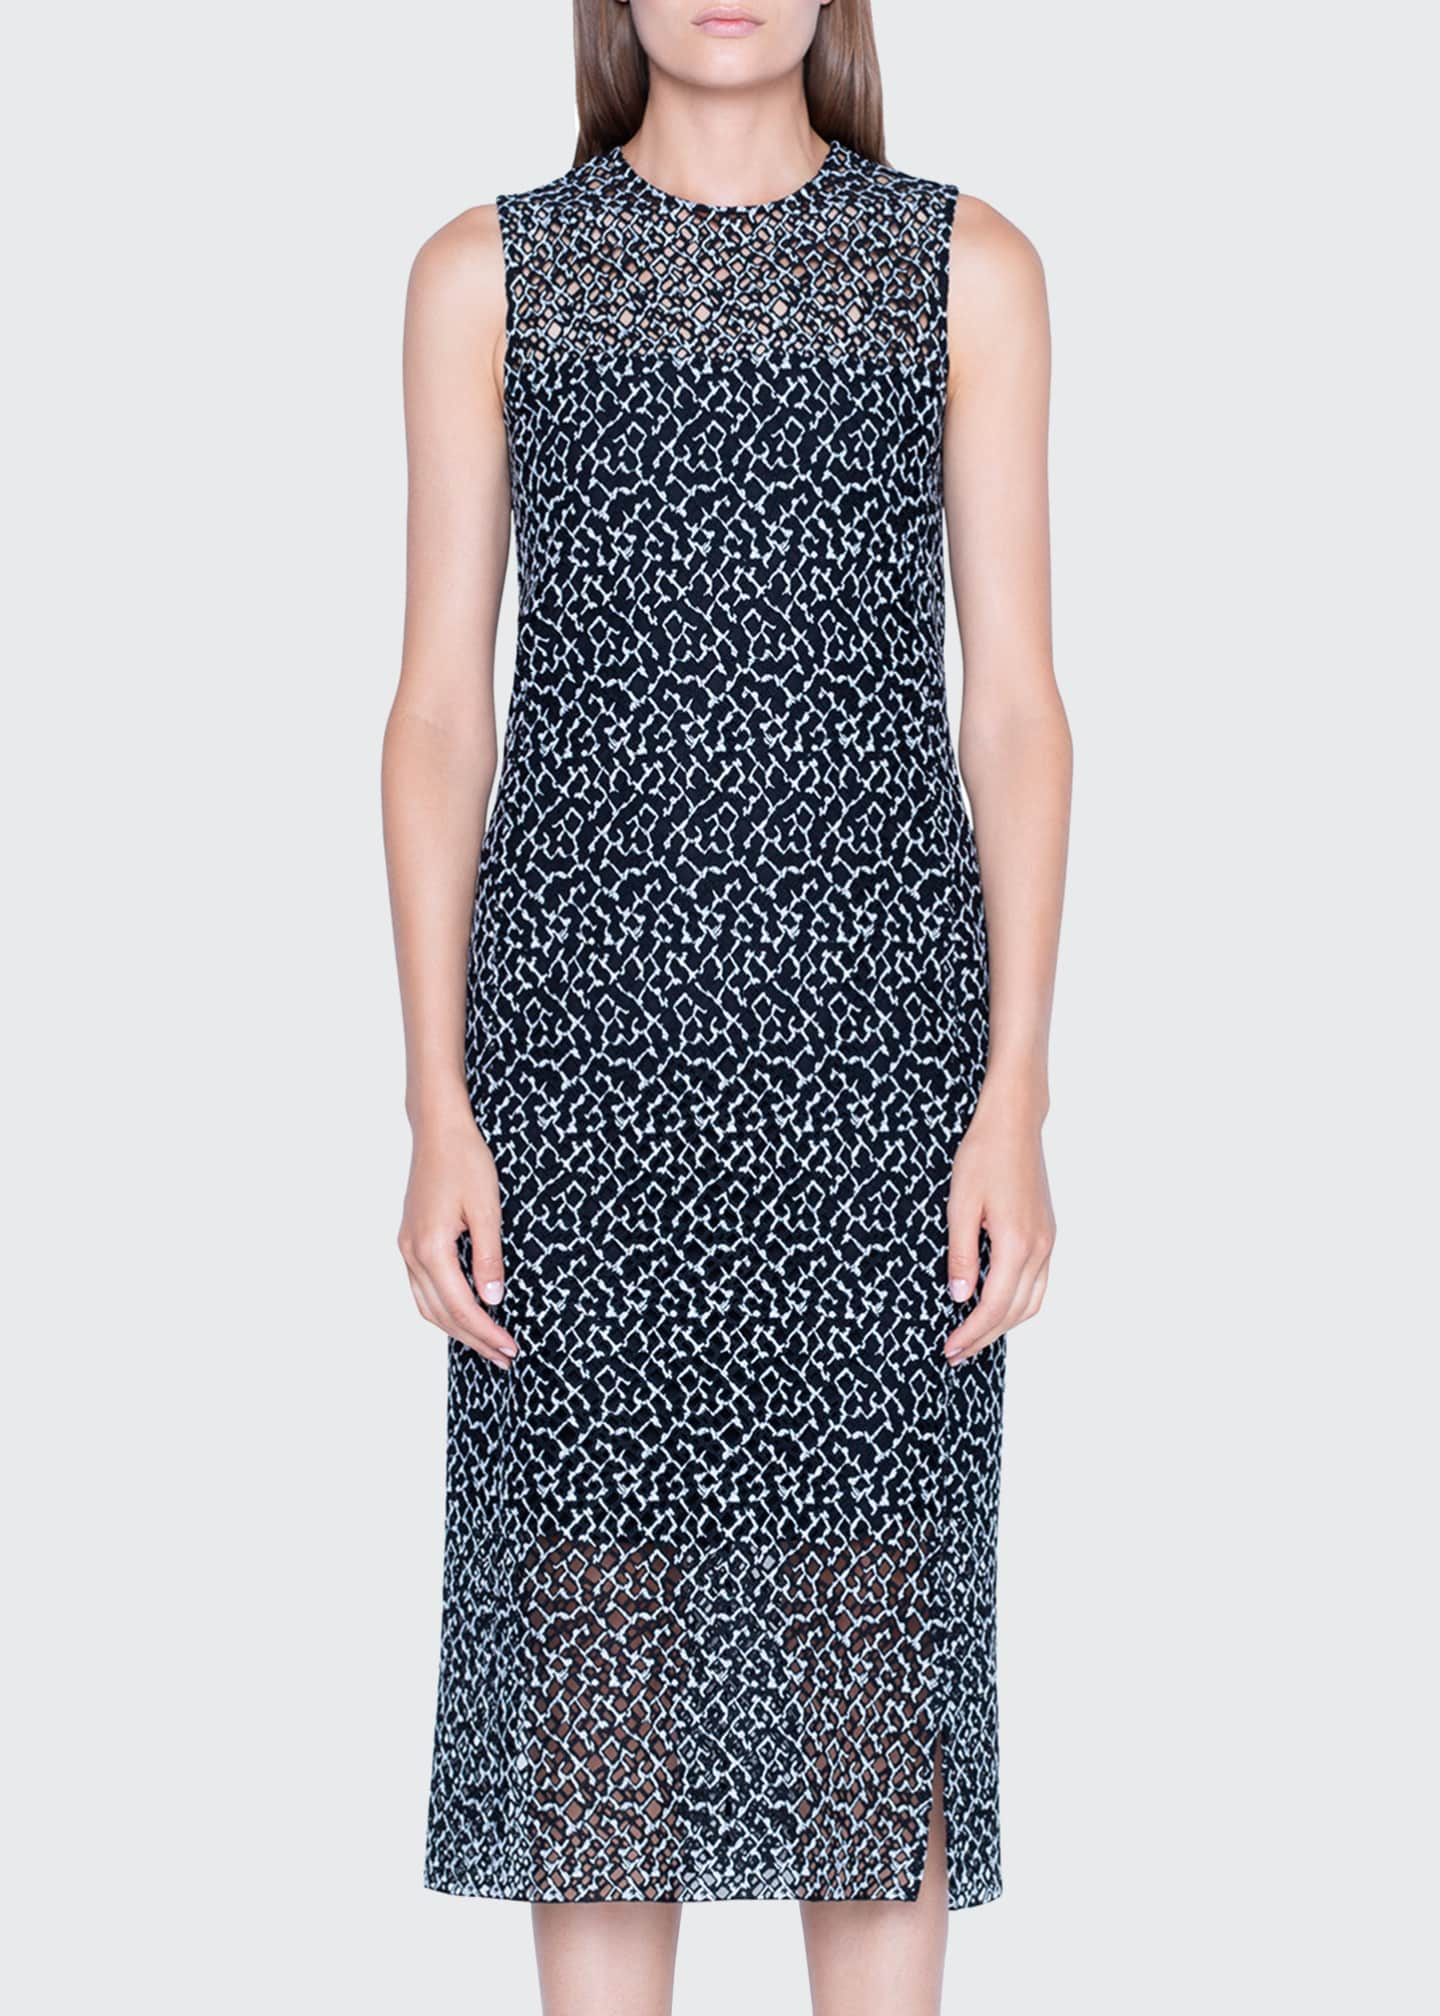 Image 3 of 3: St. Gallen Embroidered Lace Sleeveless Dress